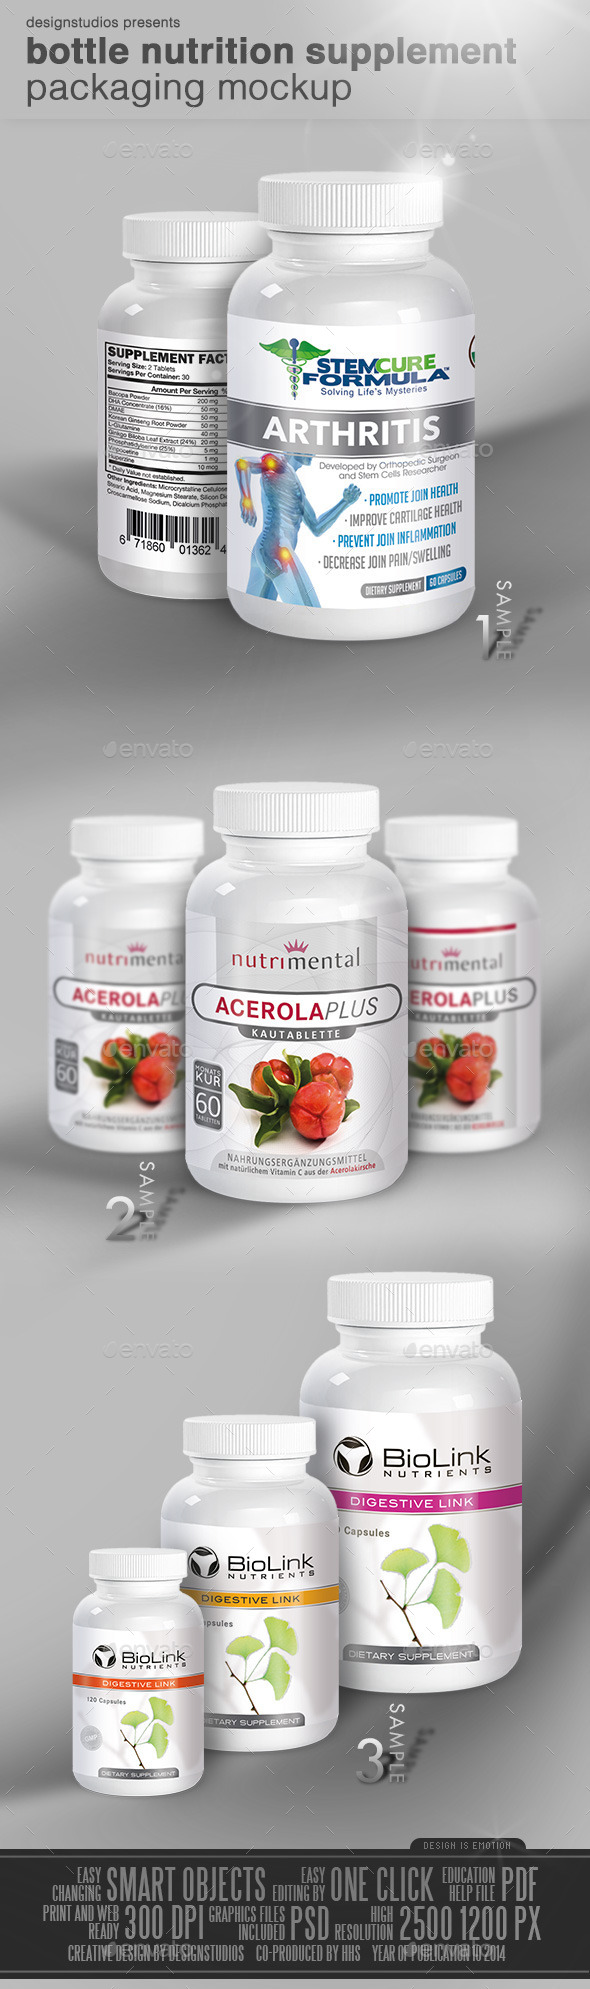 GraphicRiver Bottle Nutrition Supplement Packaging Mock-Up 9251421